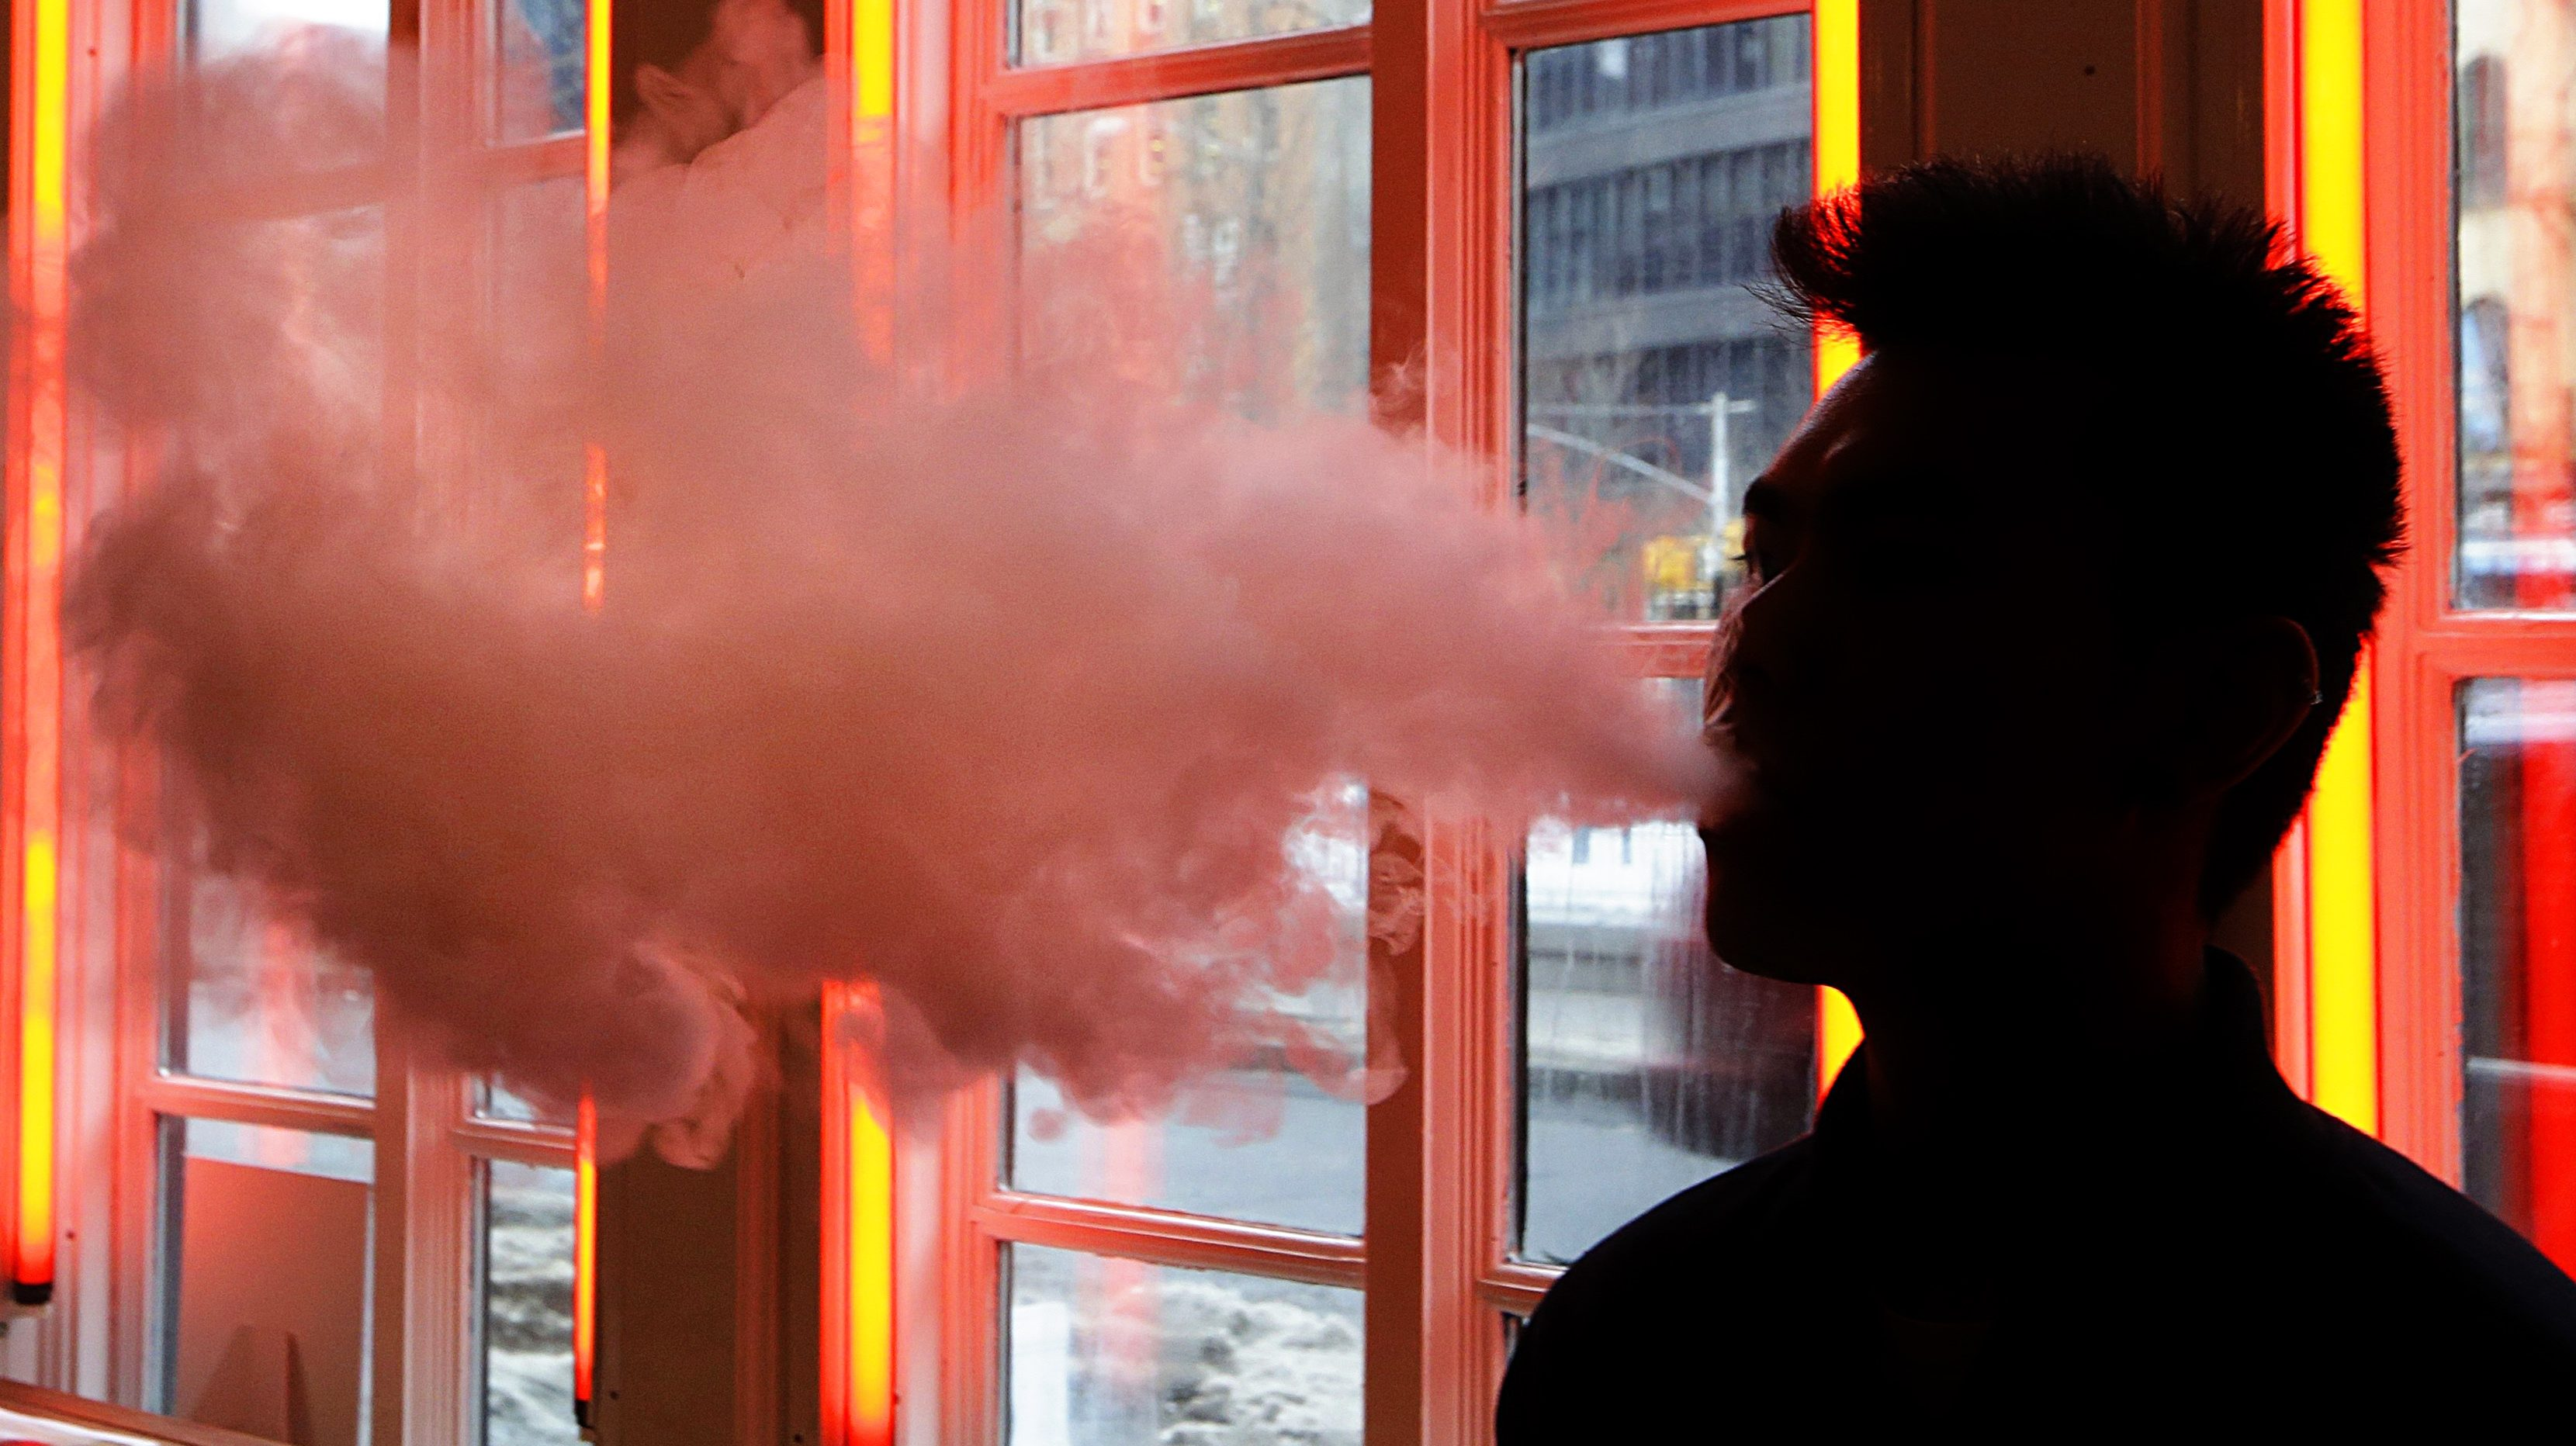 The silhouette of a person vaping.